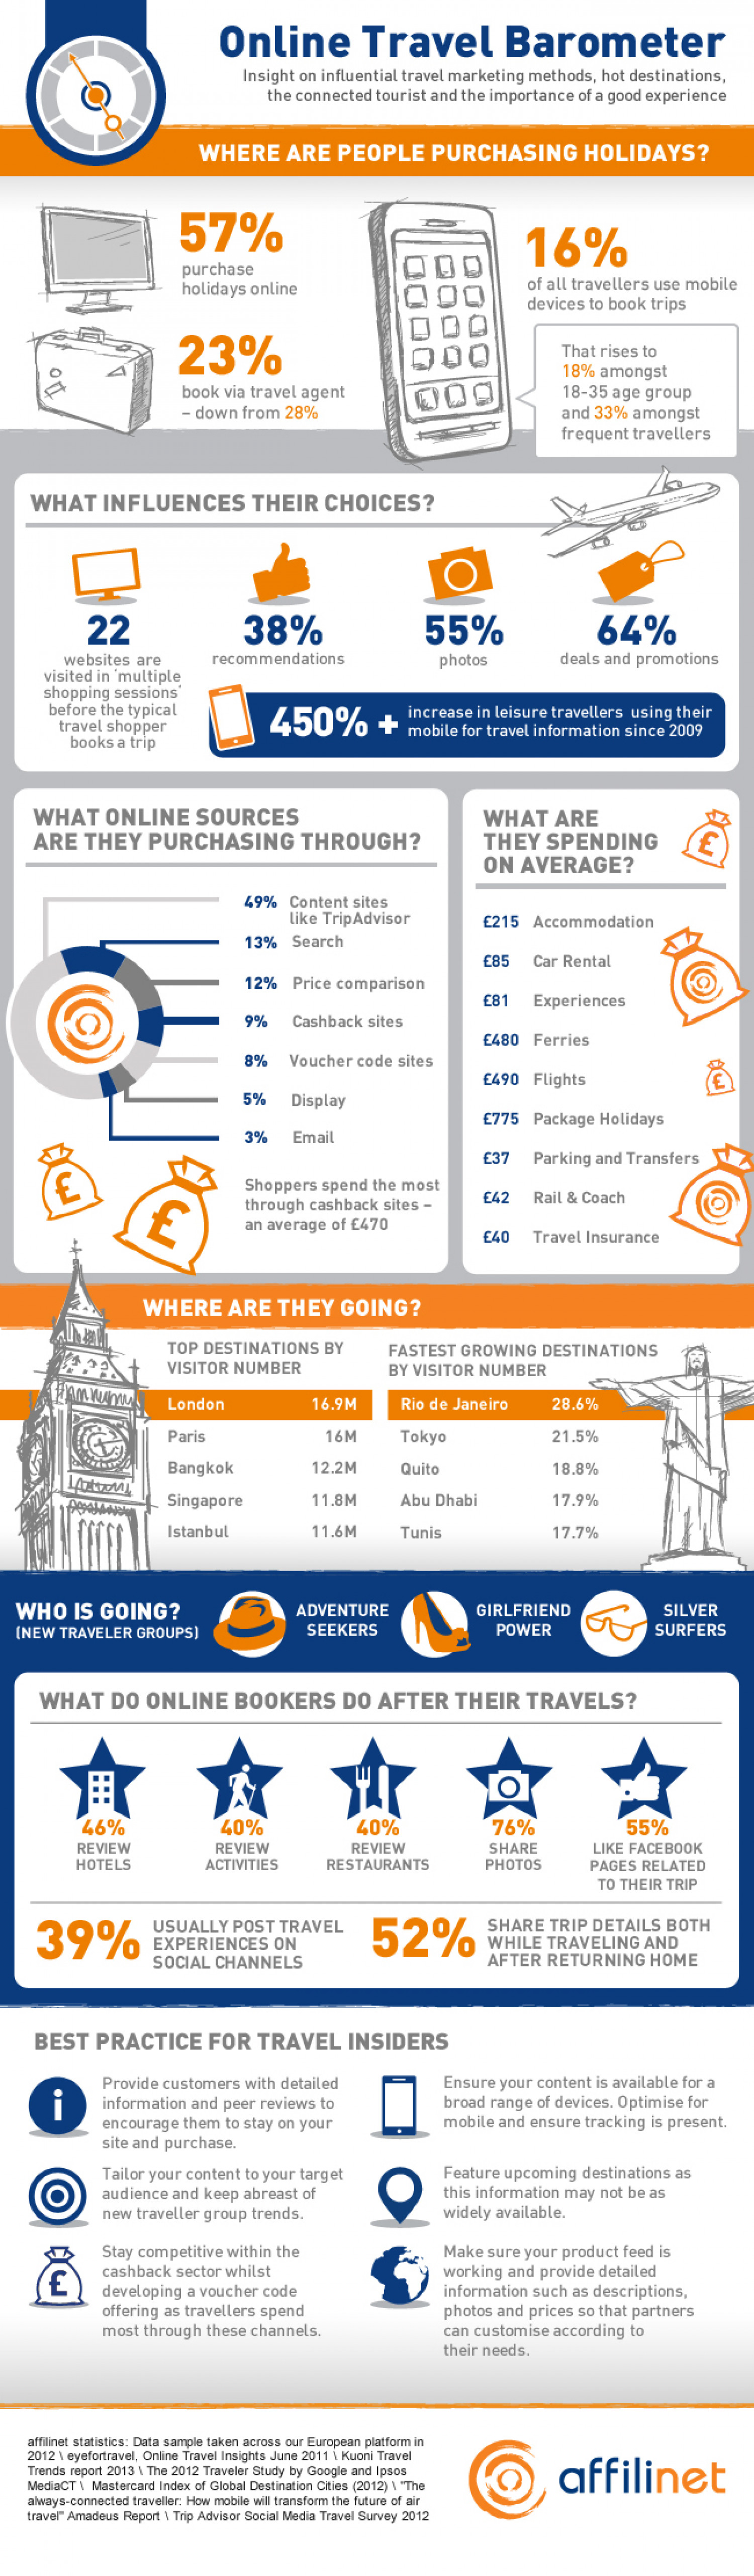 Online Travel Barometer Infographic